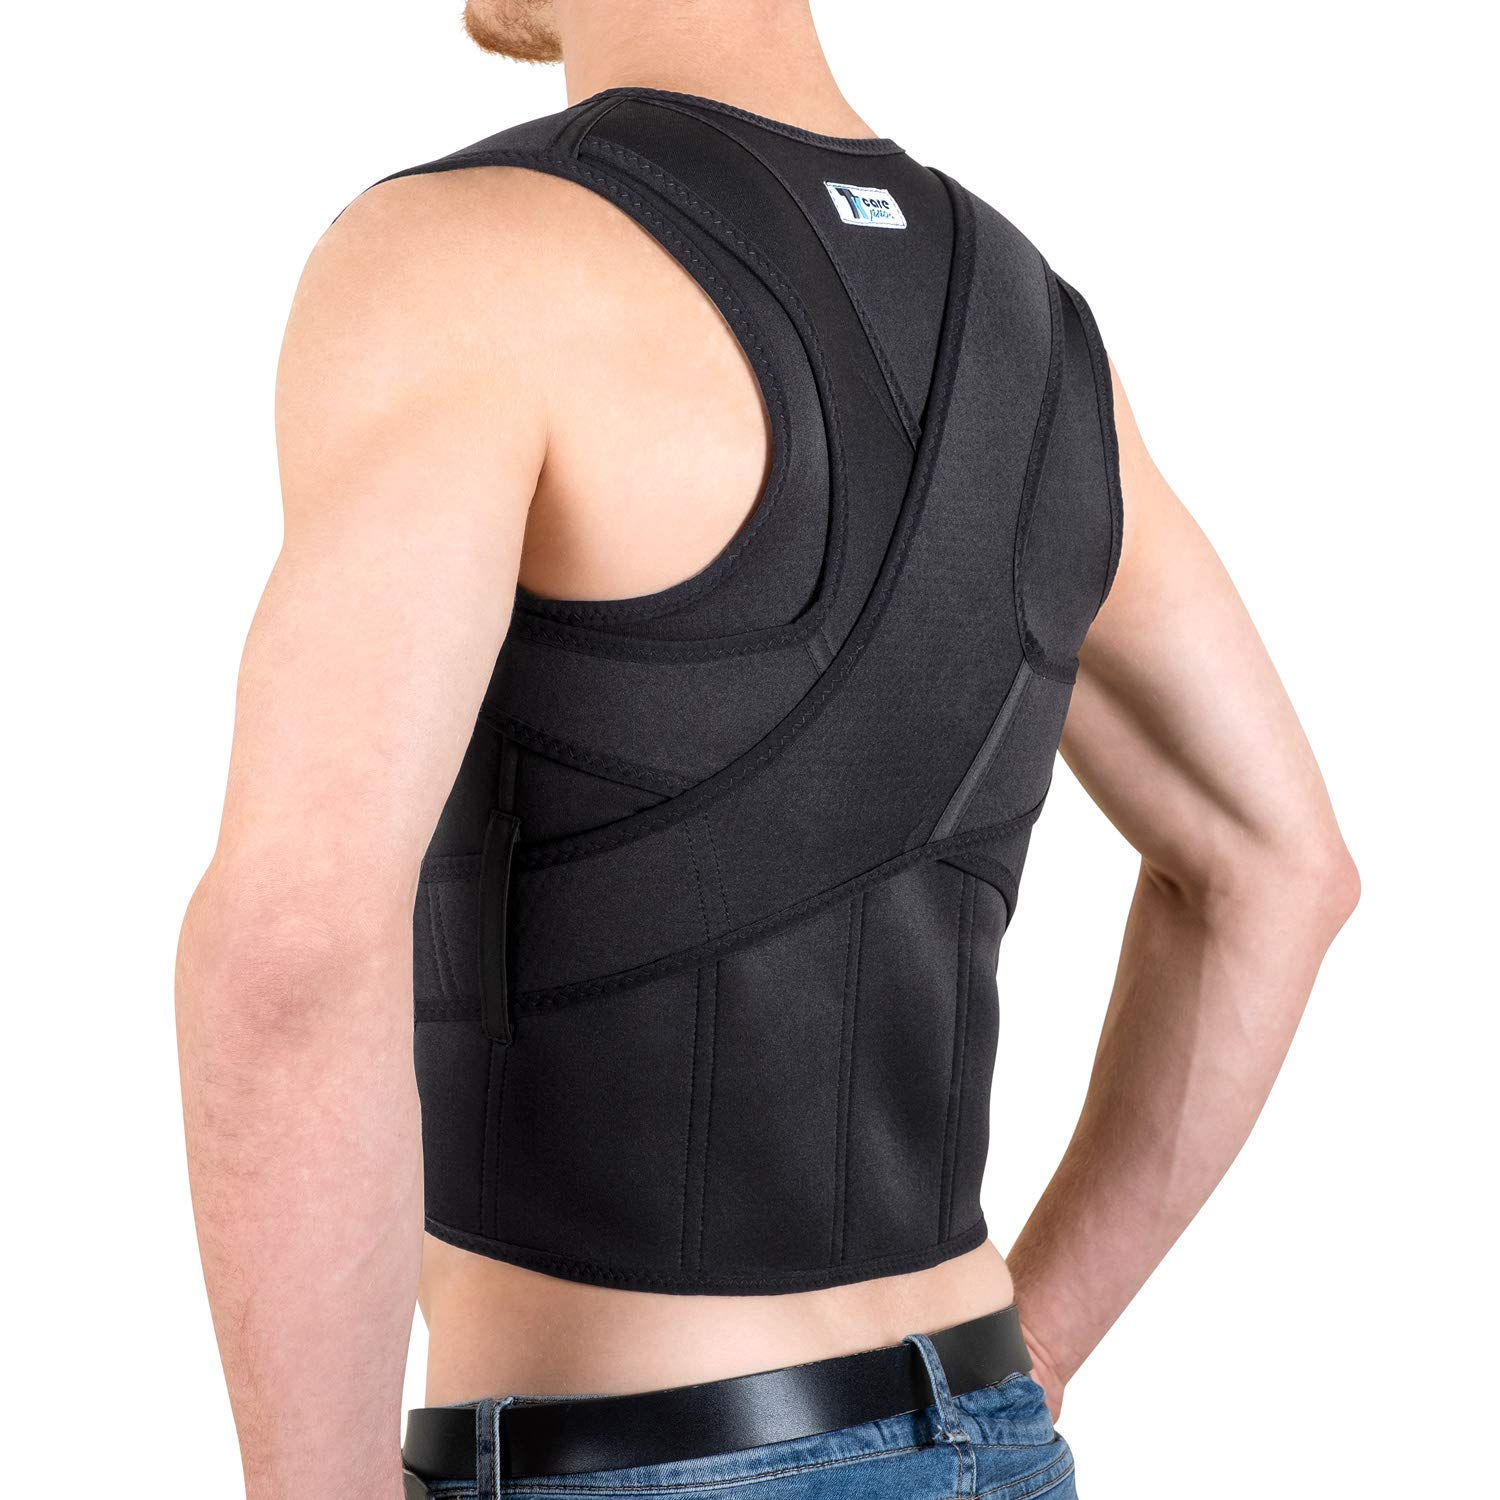 The Ultimate Back Brace Posture Corrector- Best Fully Adjustable Support Brace - Improves Posture and Provides Lumbar Support - for Lower and Upper Back Pain - Men and Women (L (32'' - 38'' Waist)) by TK Care Pro.